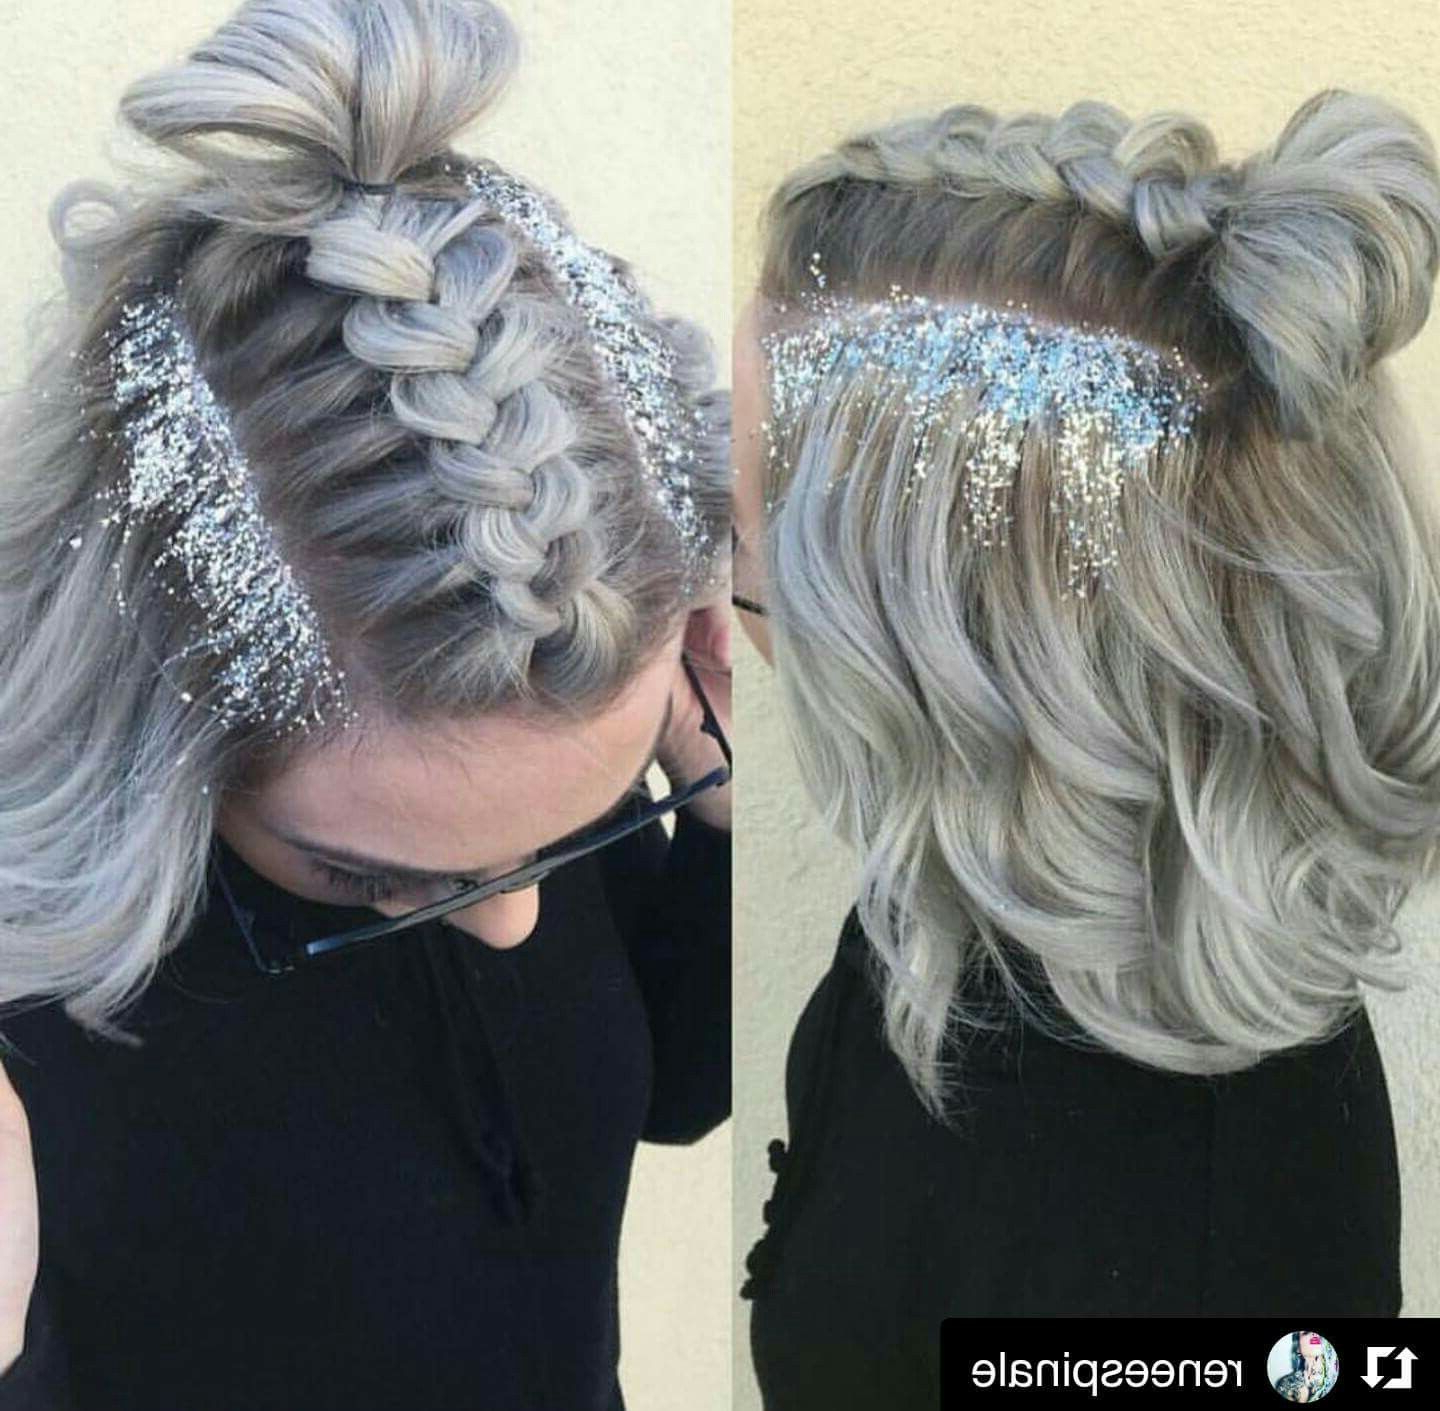 Glitter Roots And Braid | Hair Nails Makeup Skin In 2018 | Pinterest Pertaining To Beach Hairstyles For Short Hair (View 9 of 25)